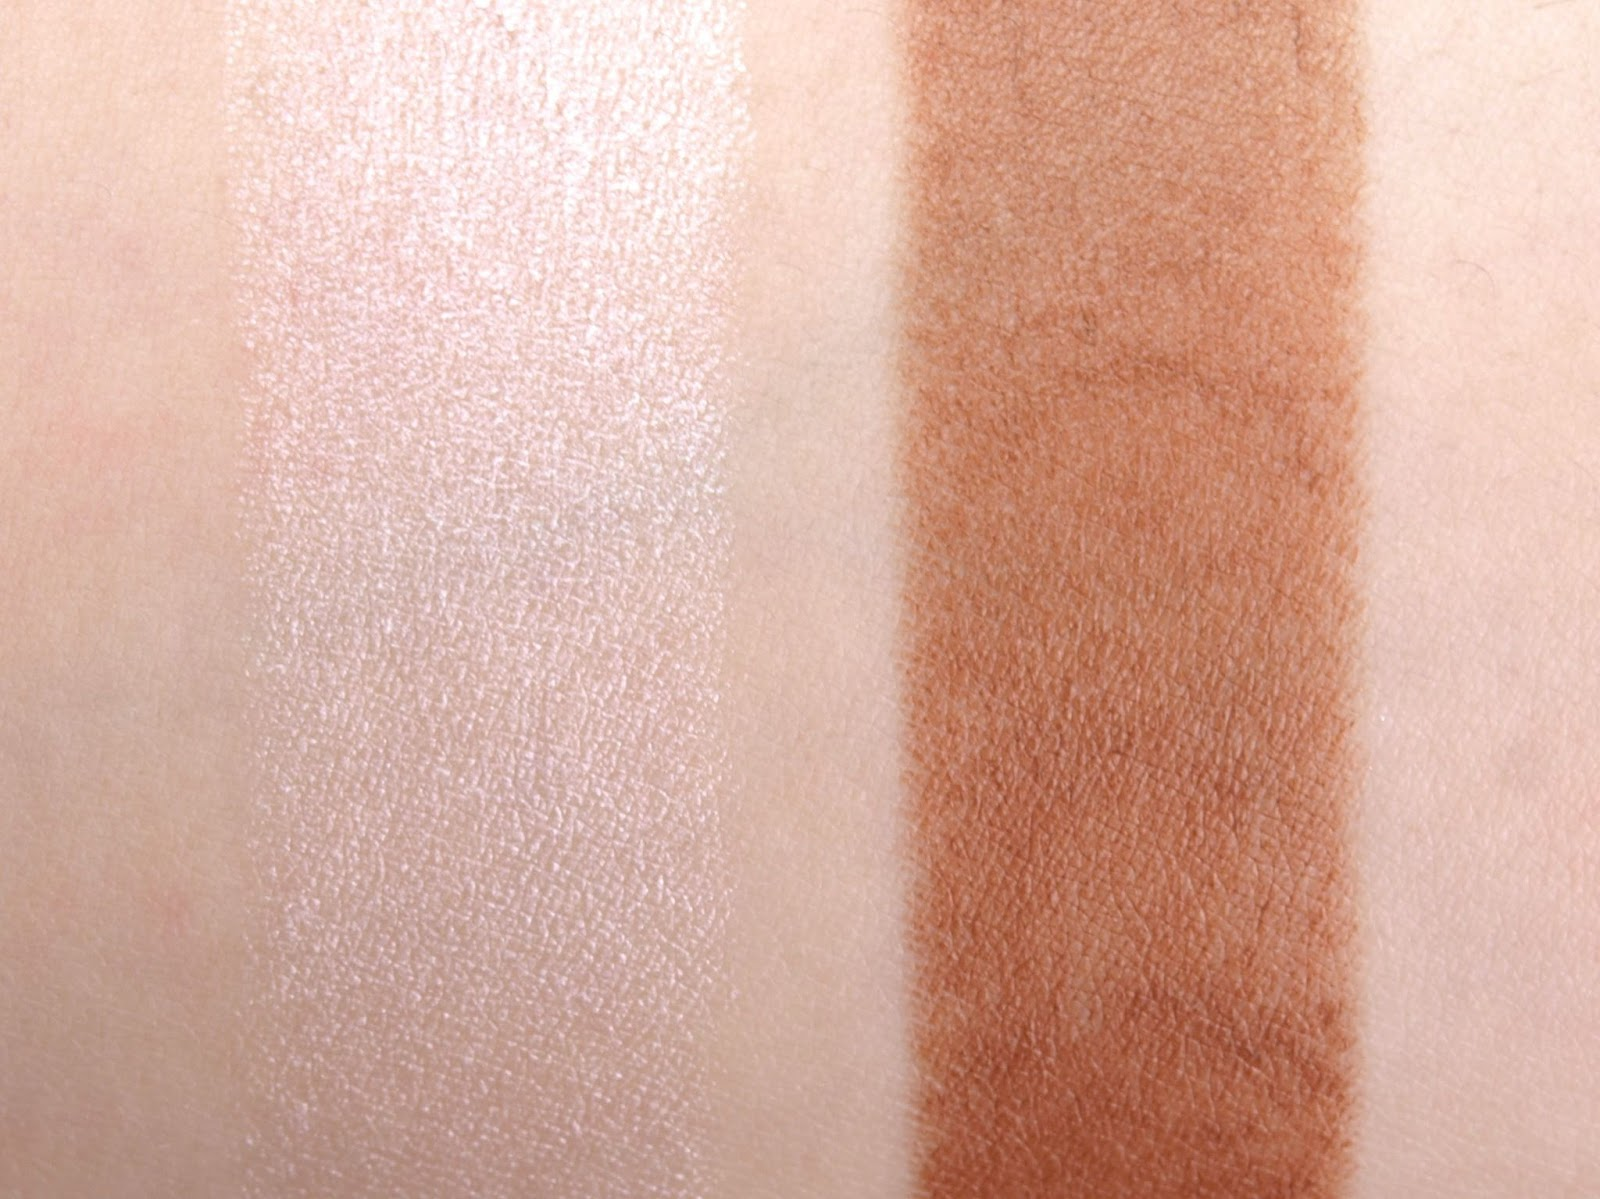 Clinique Chubby Stick Sculpting Contour & Sculpting Highlight: Review and Swatches